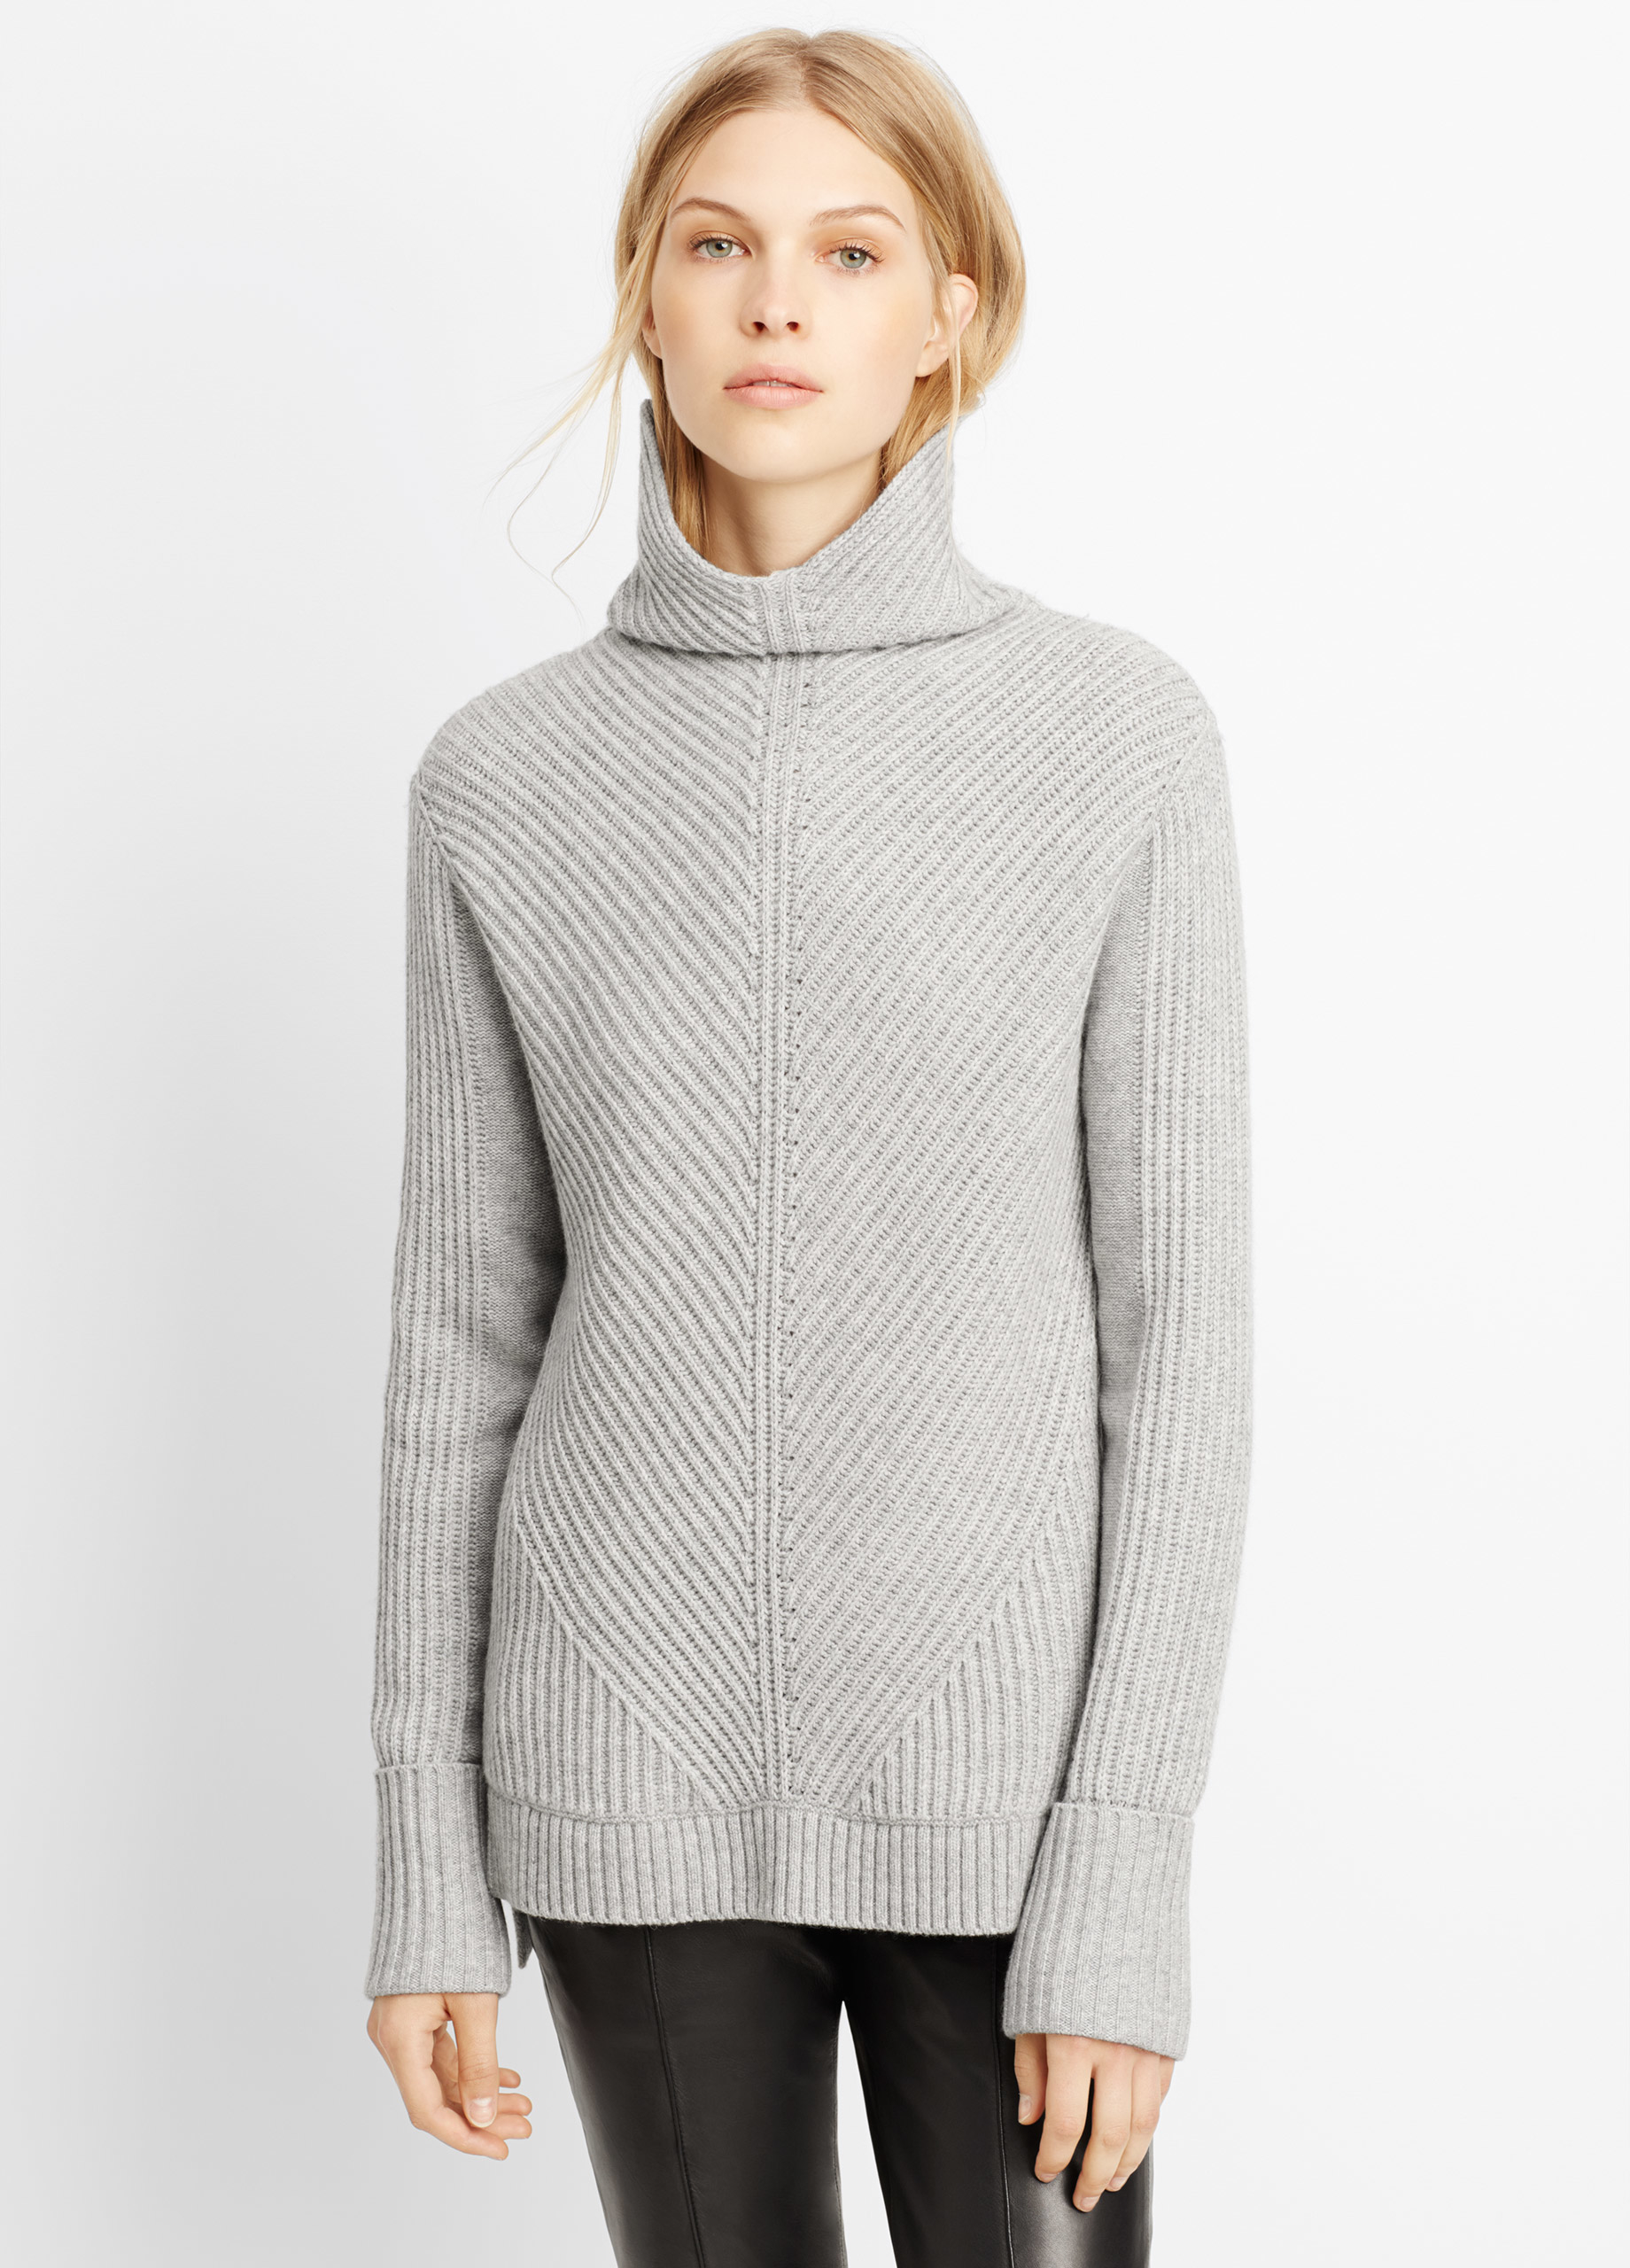 Vince Wool Cashmere Directional Rib Turtleneck Sweater in Gray | Lyst